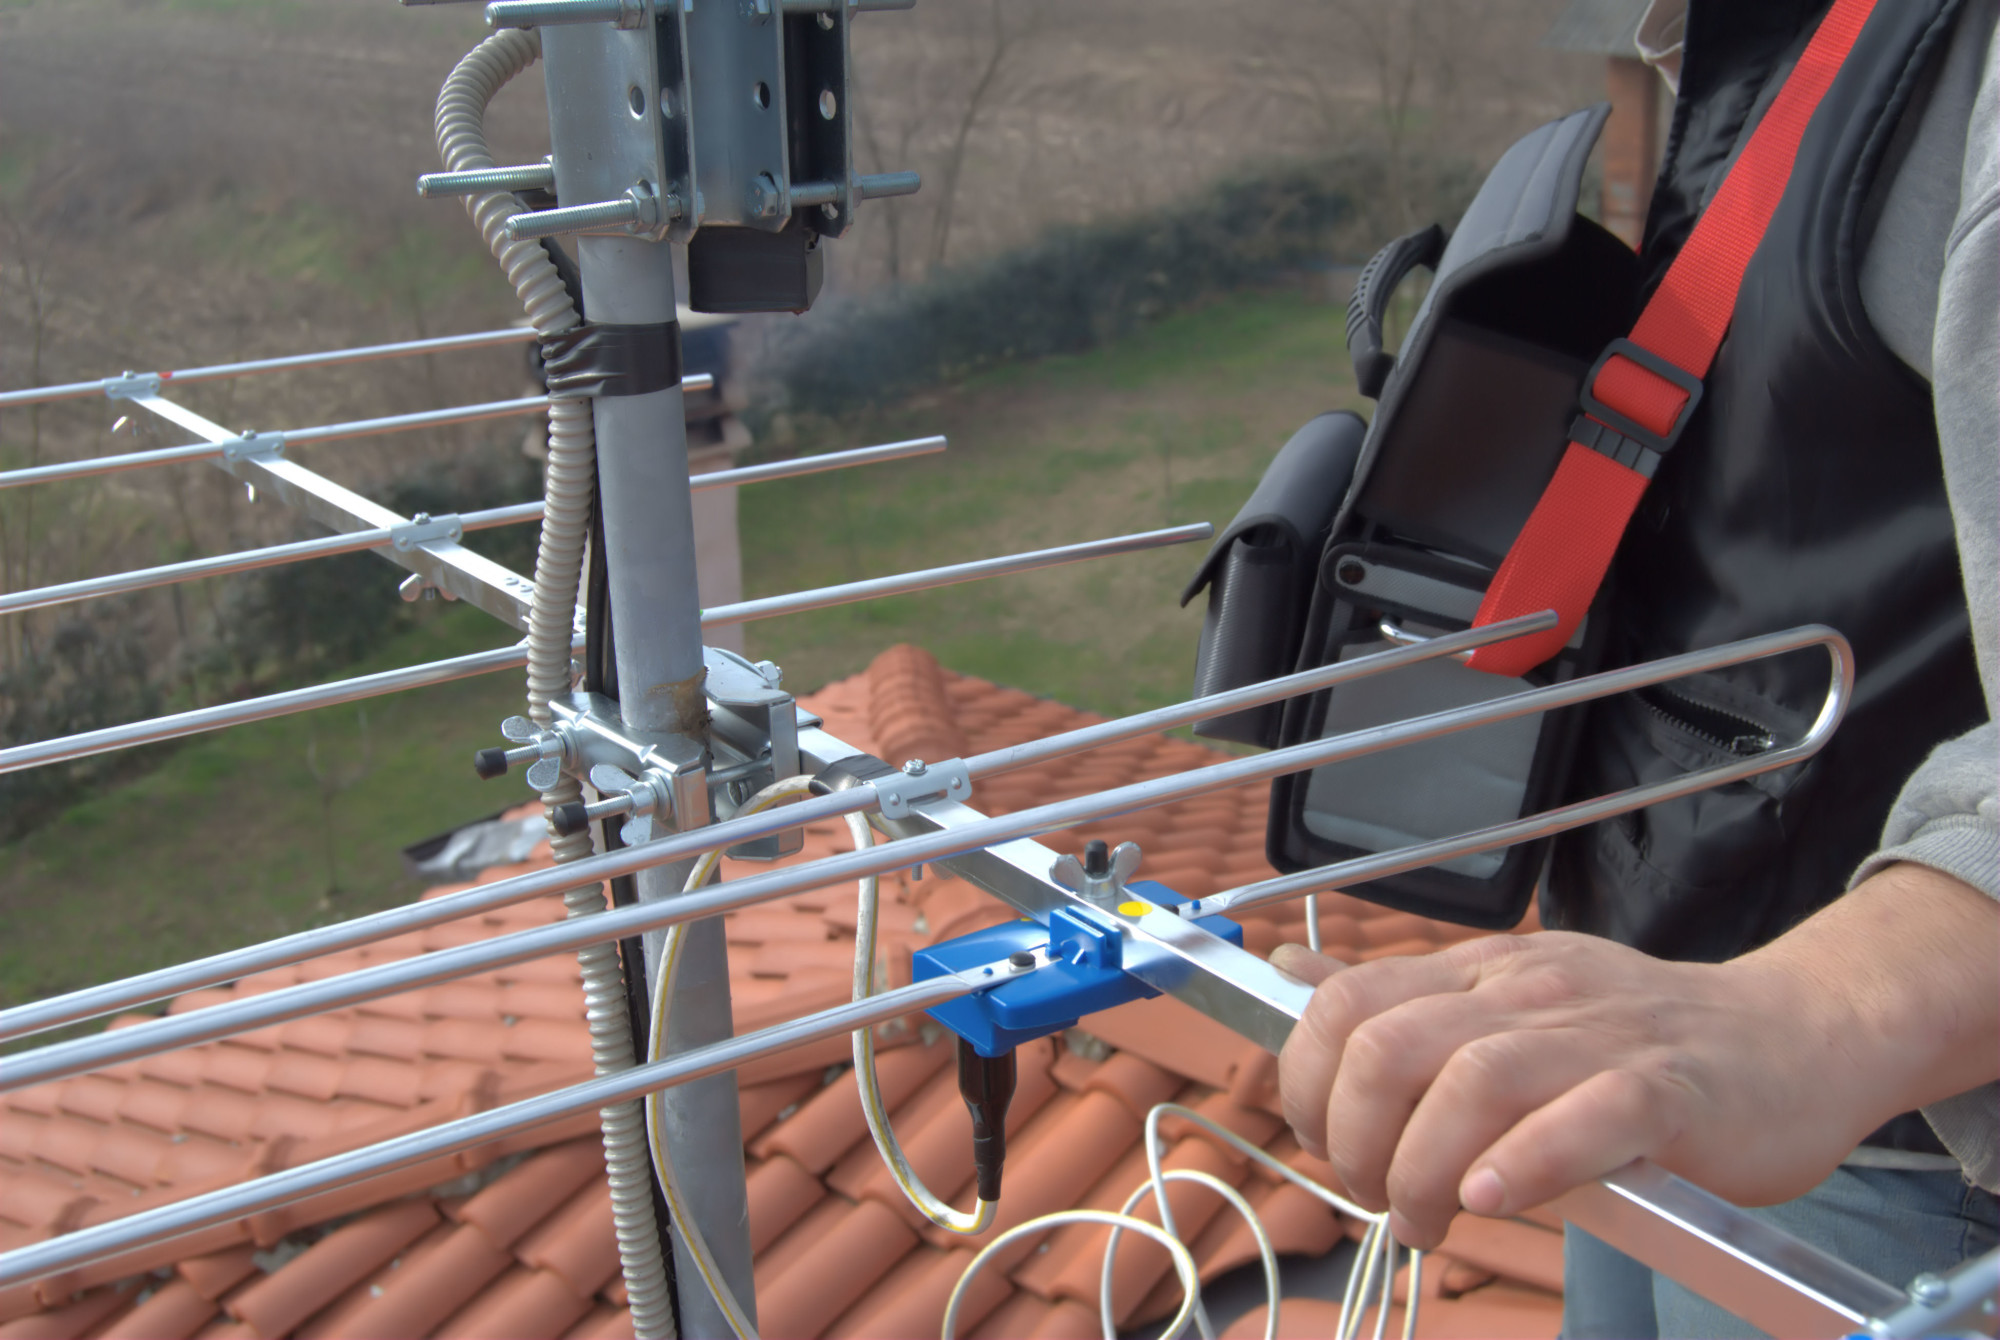 How to Fix a TV Antenna